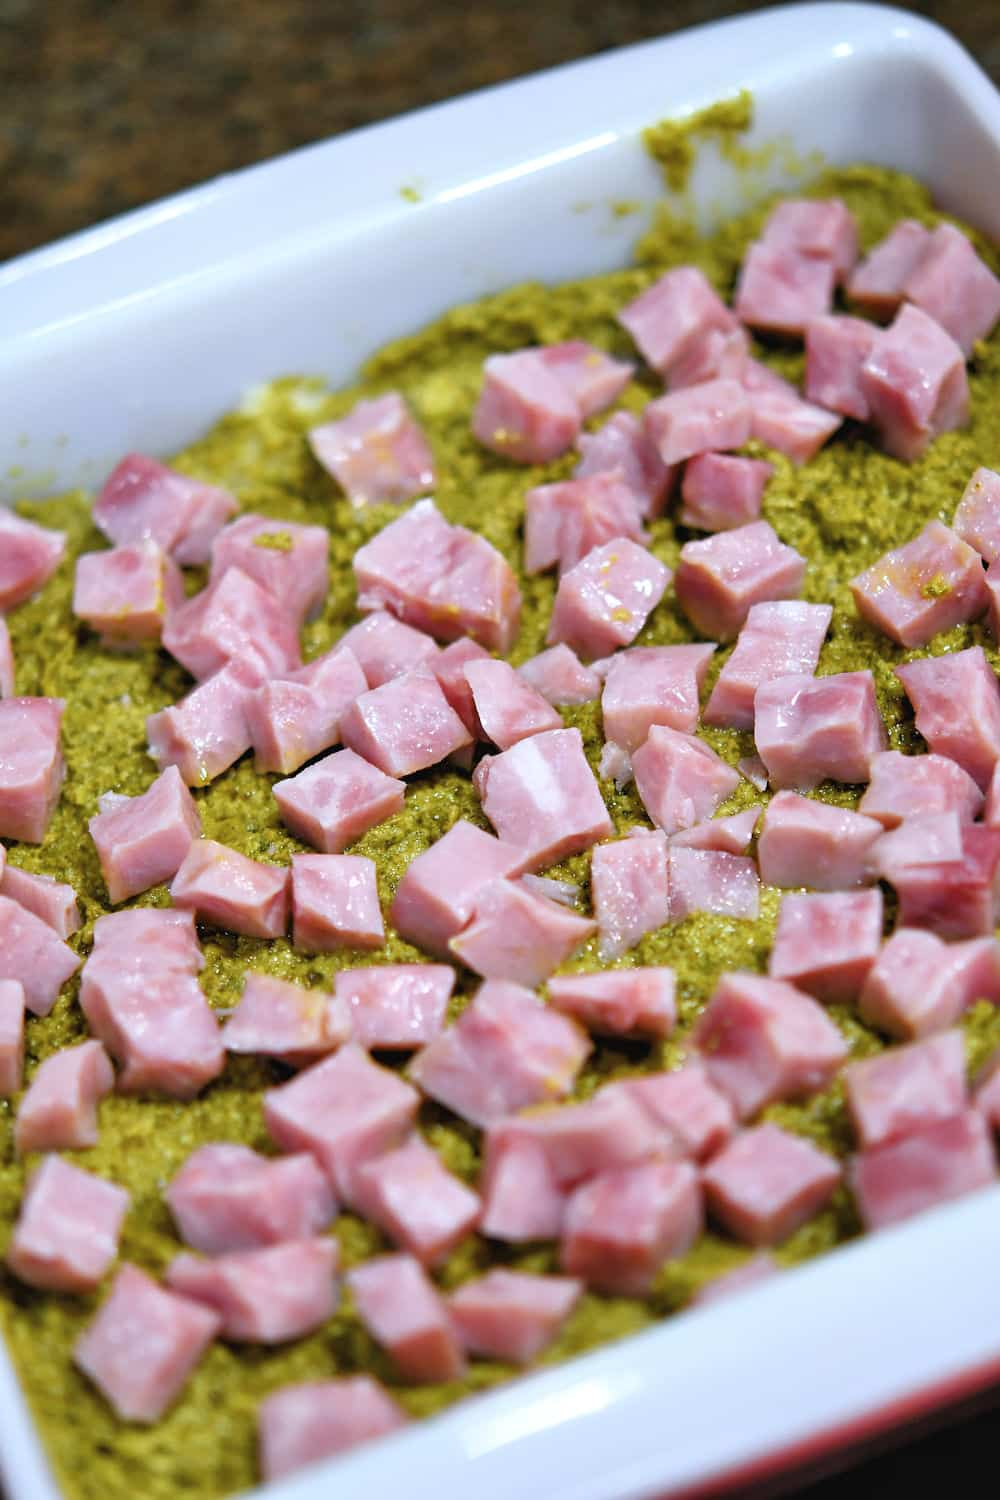 cubed ham sprinkled over the top of the pesto for the sliders